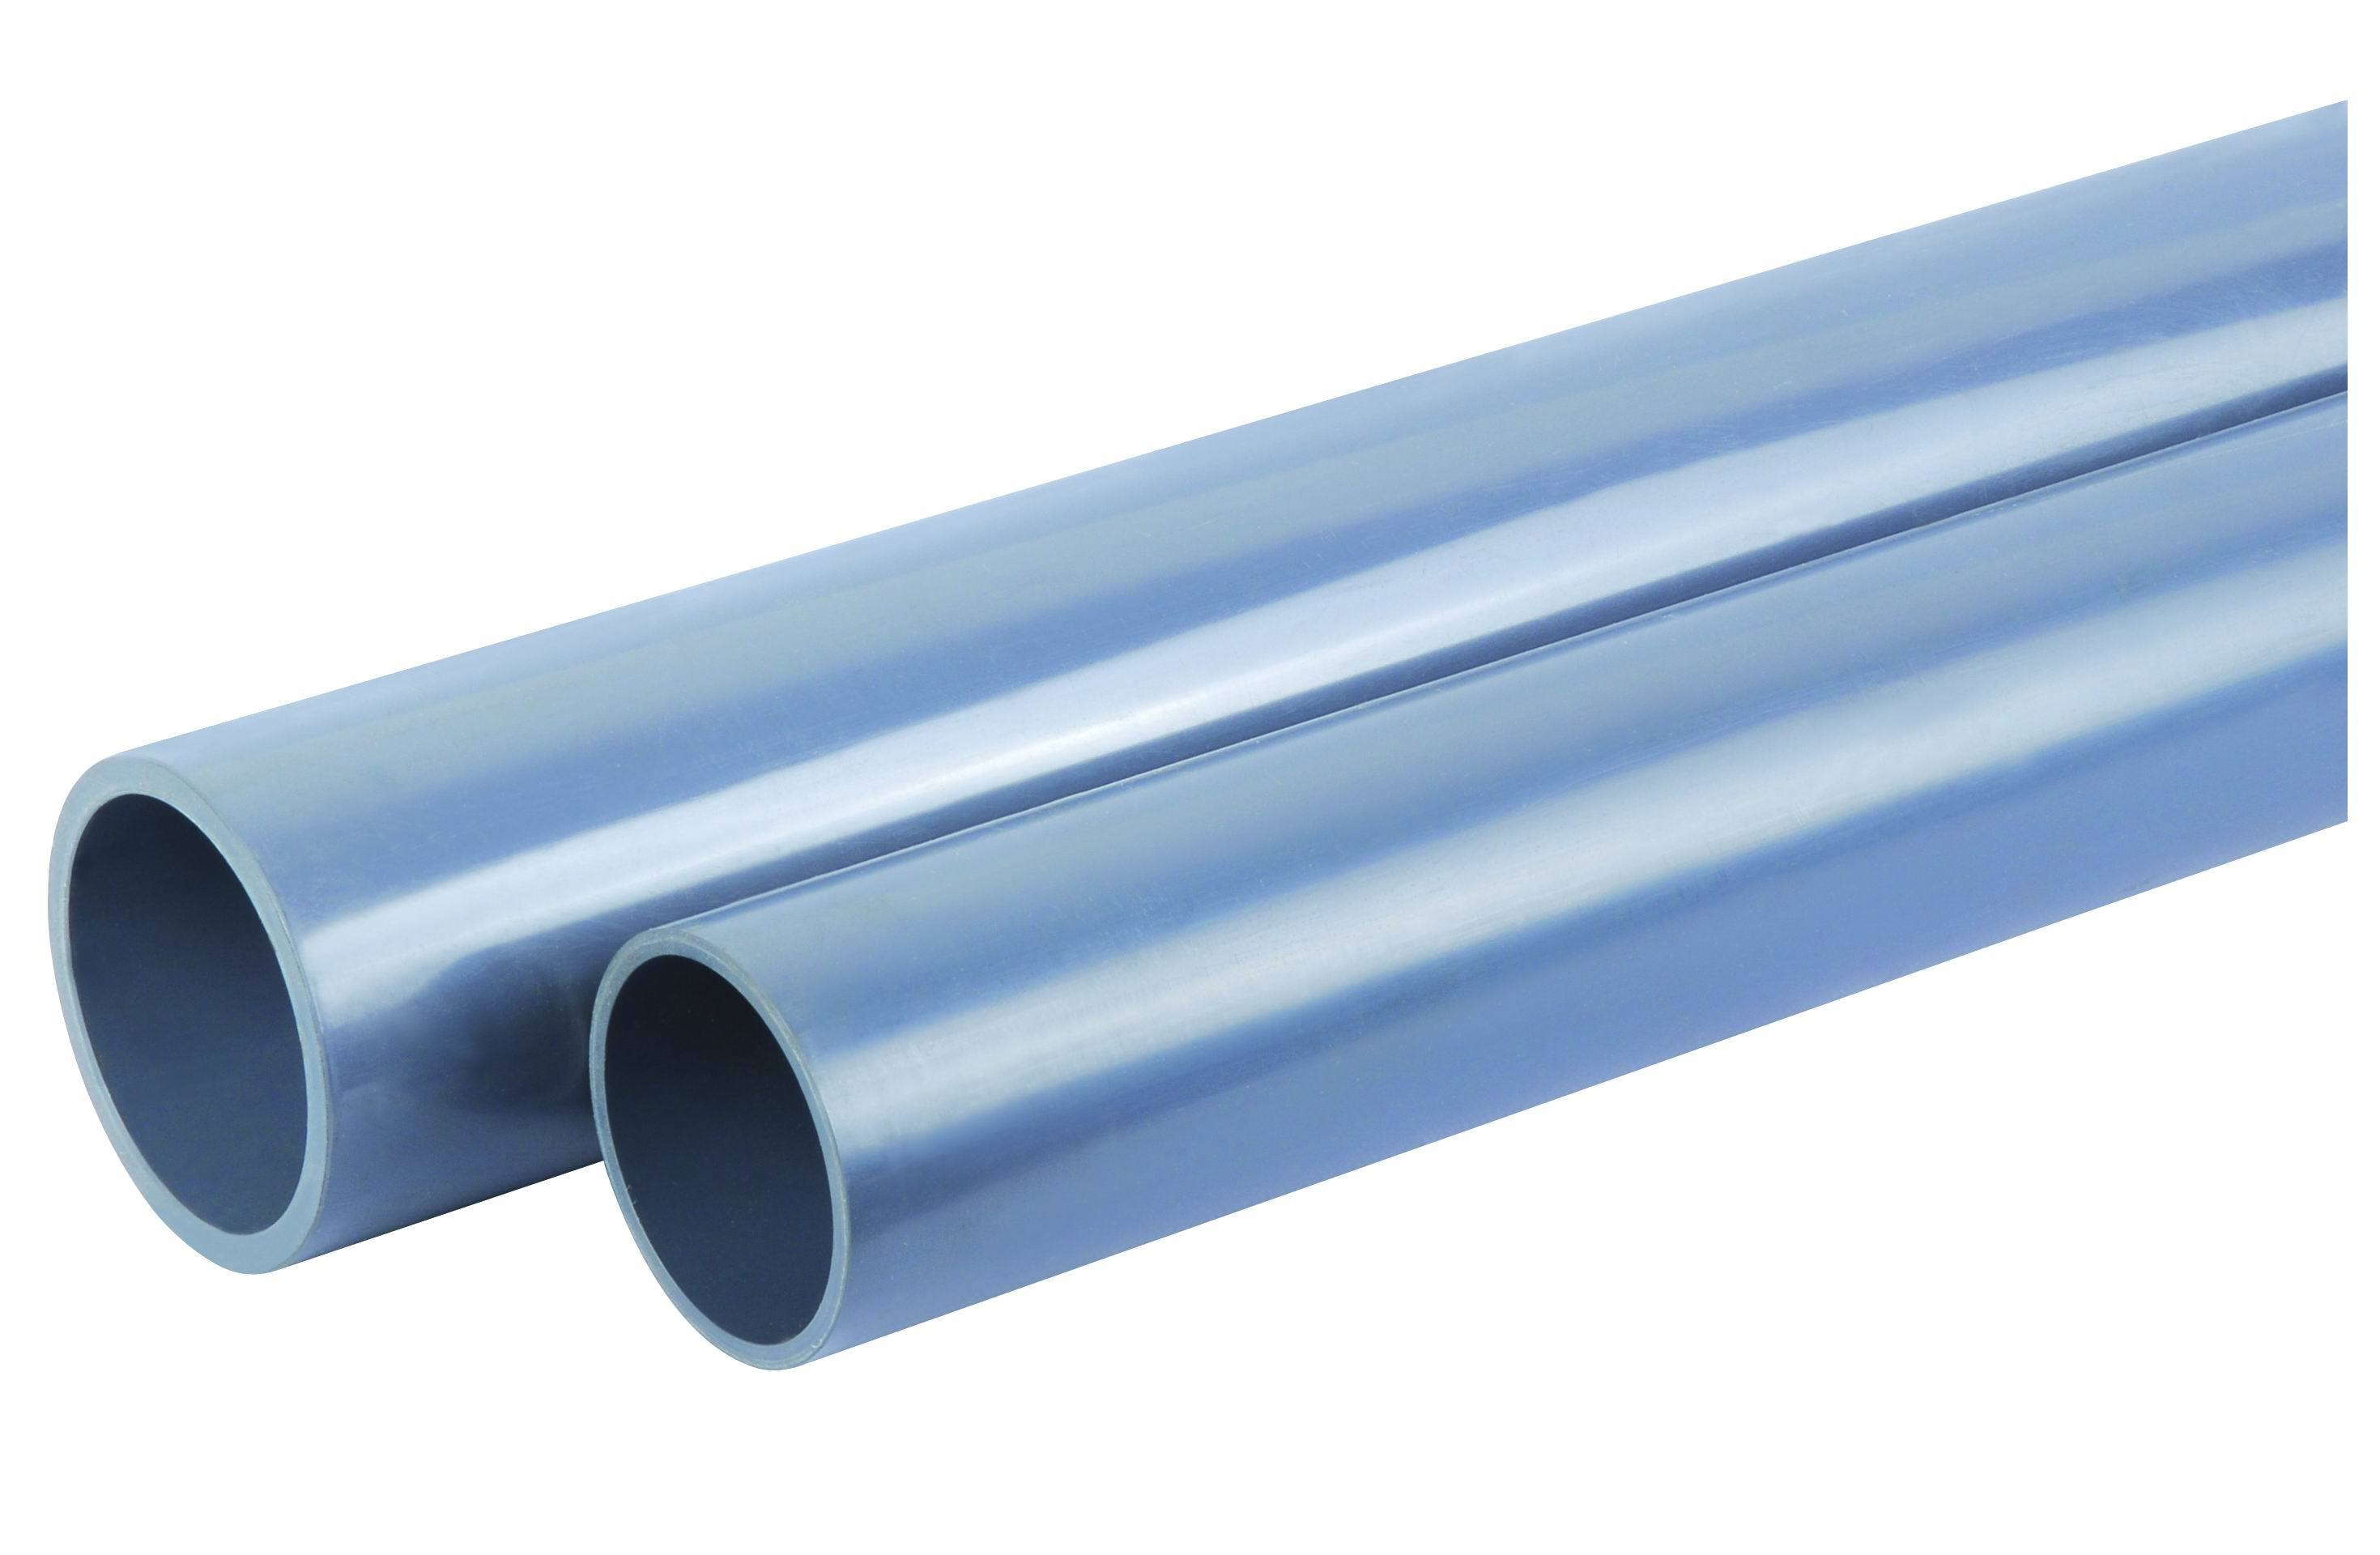 Plastic pipe plastic pipe business insurance quotes for Buy plastic pipe